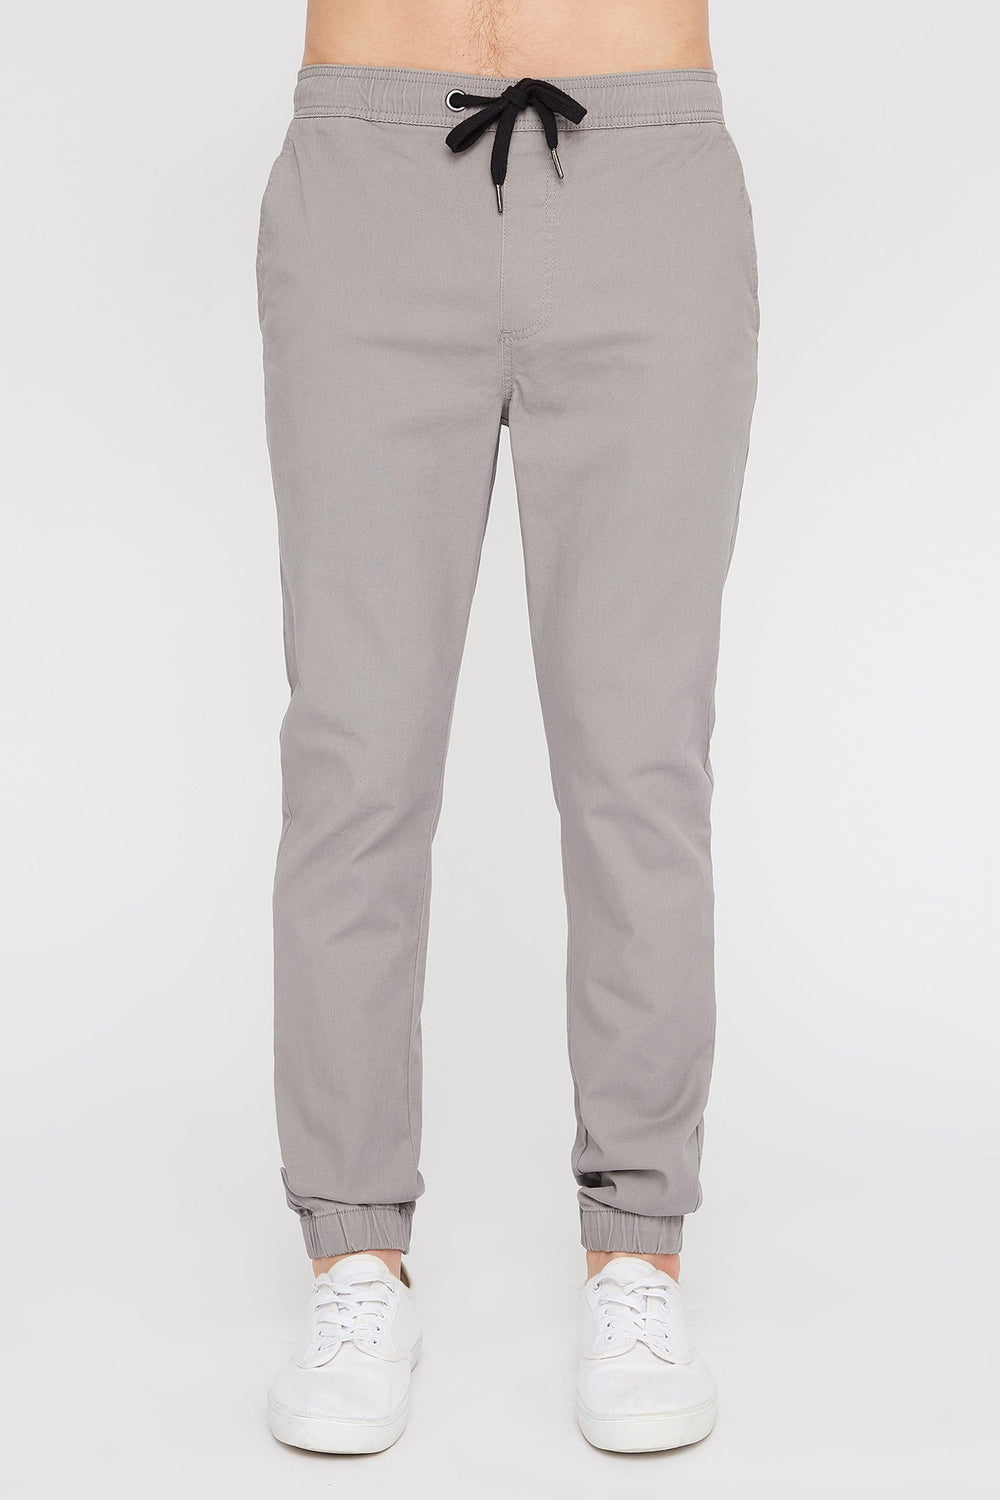 West49 Mens Solid Twill Basic Jogger Light Grey